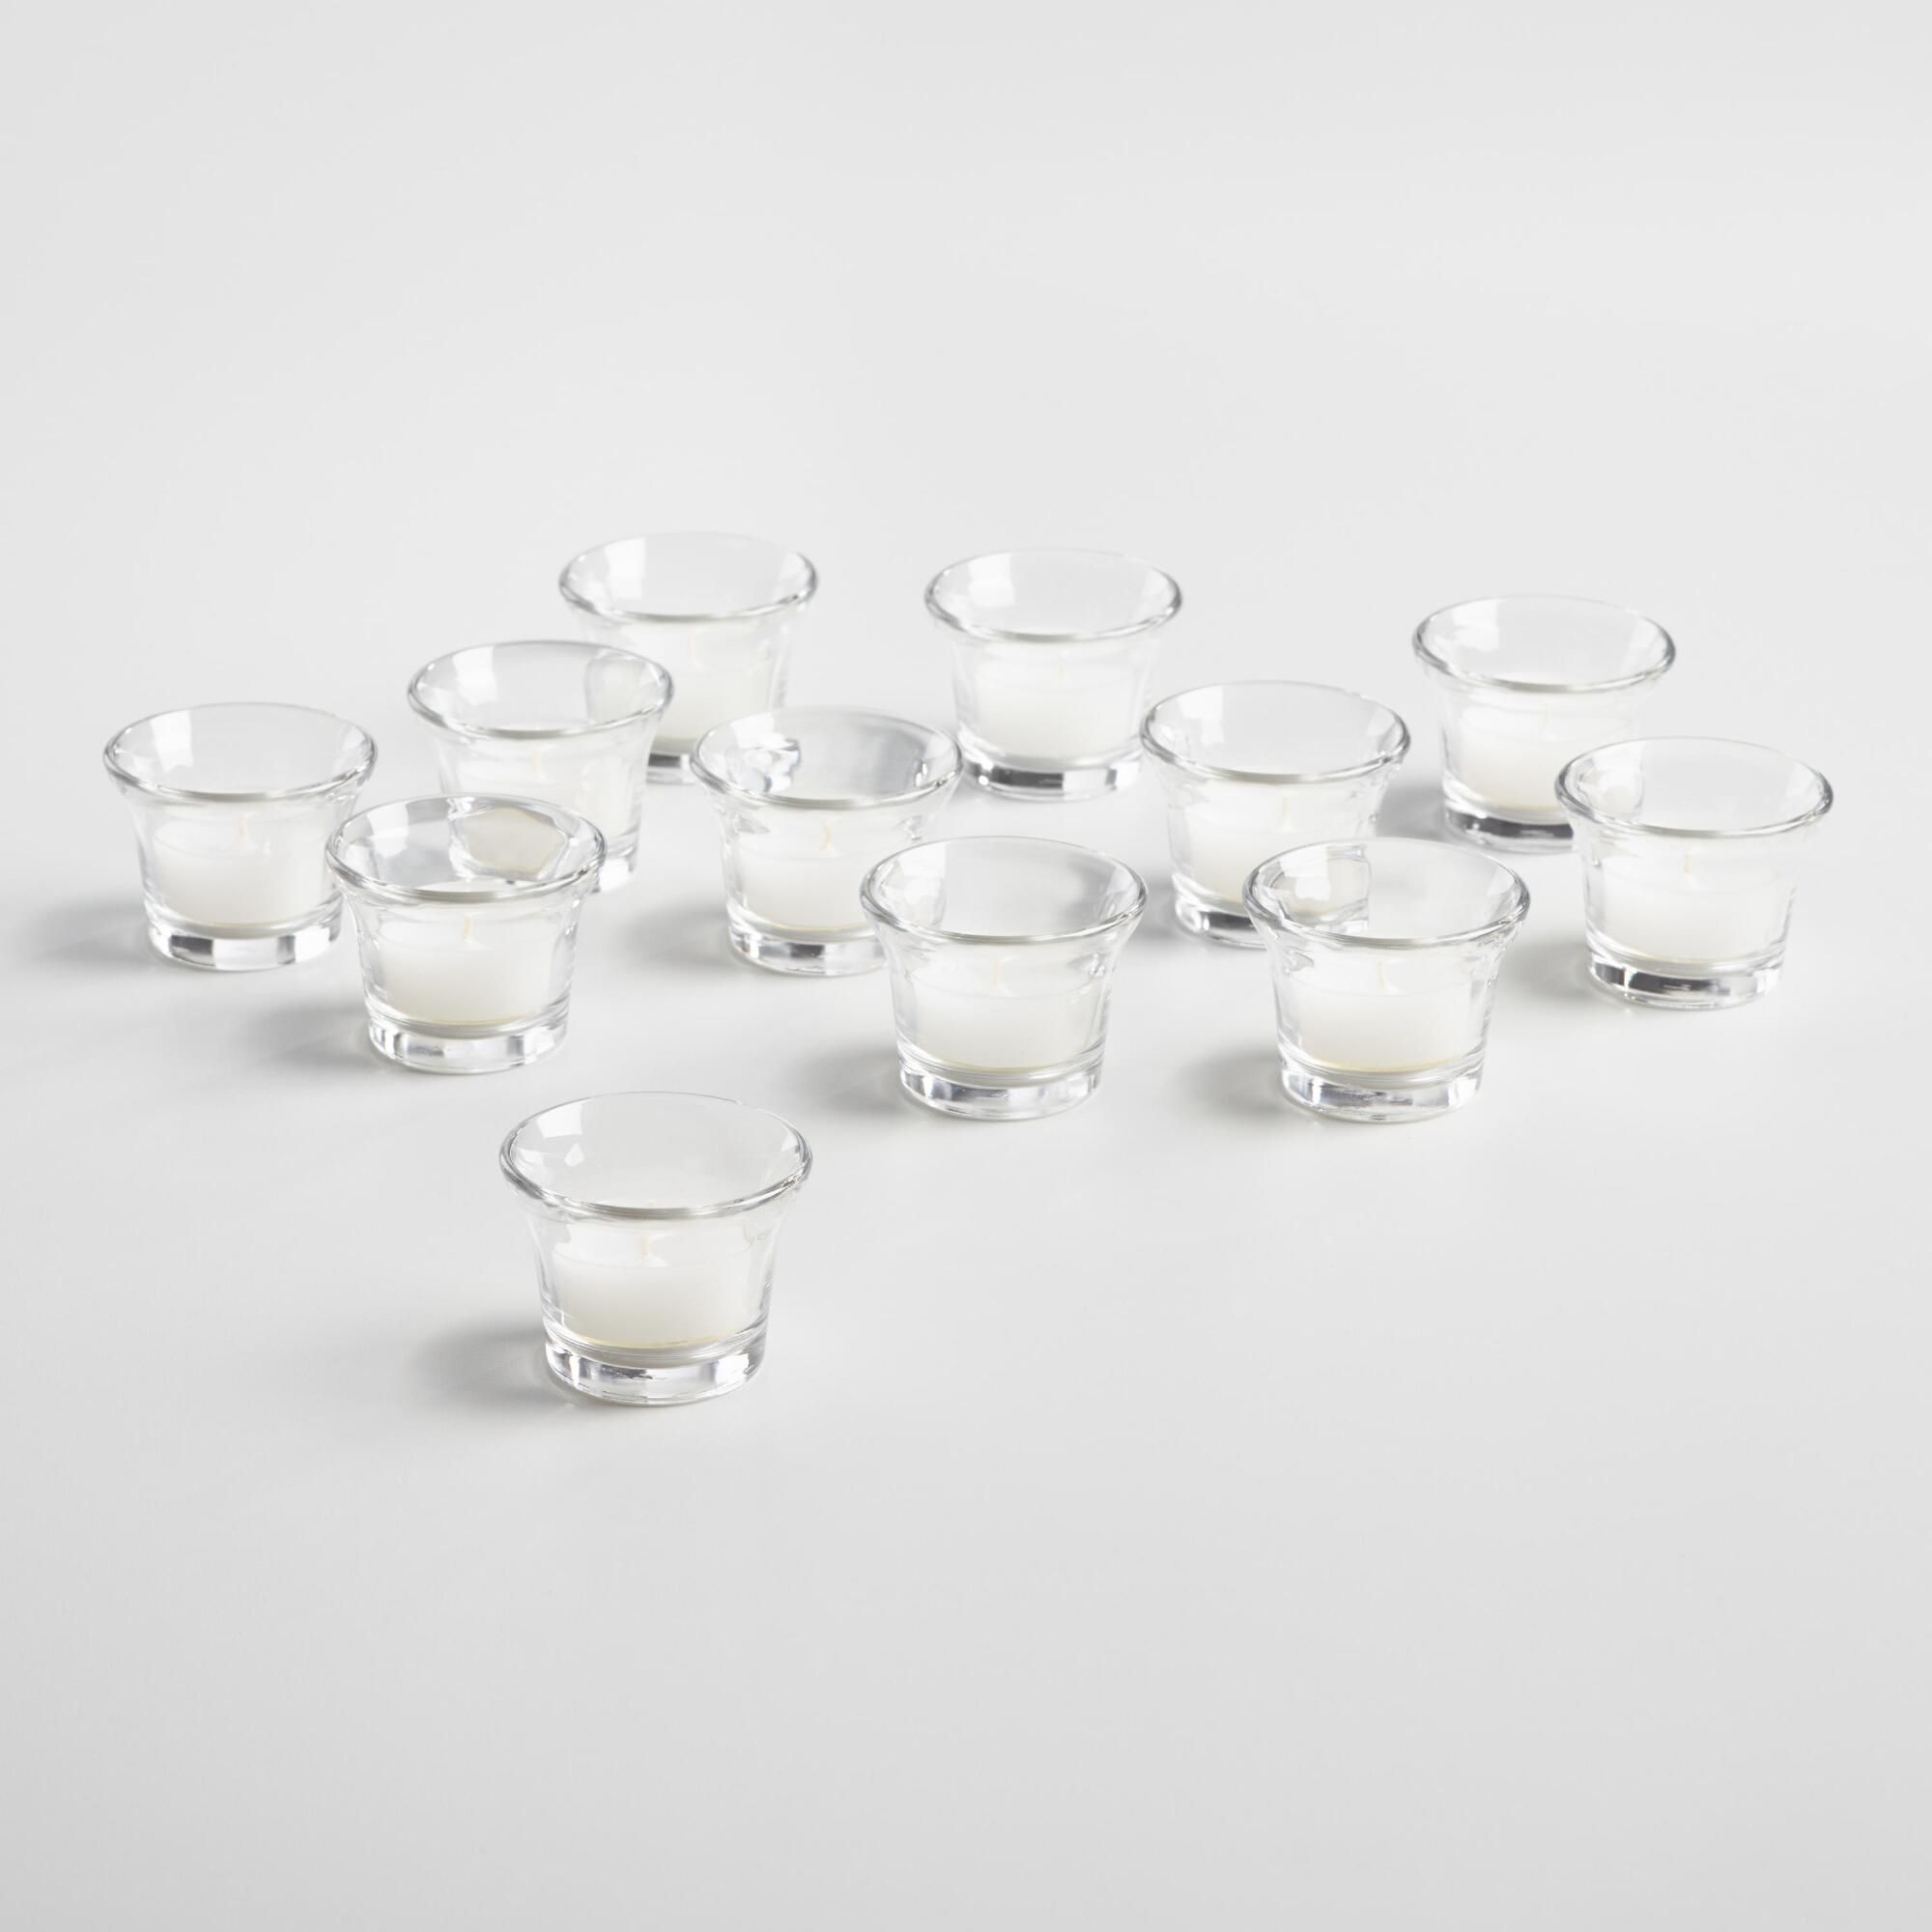 Cocktail tealight candle holders set of glass by world market